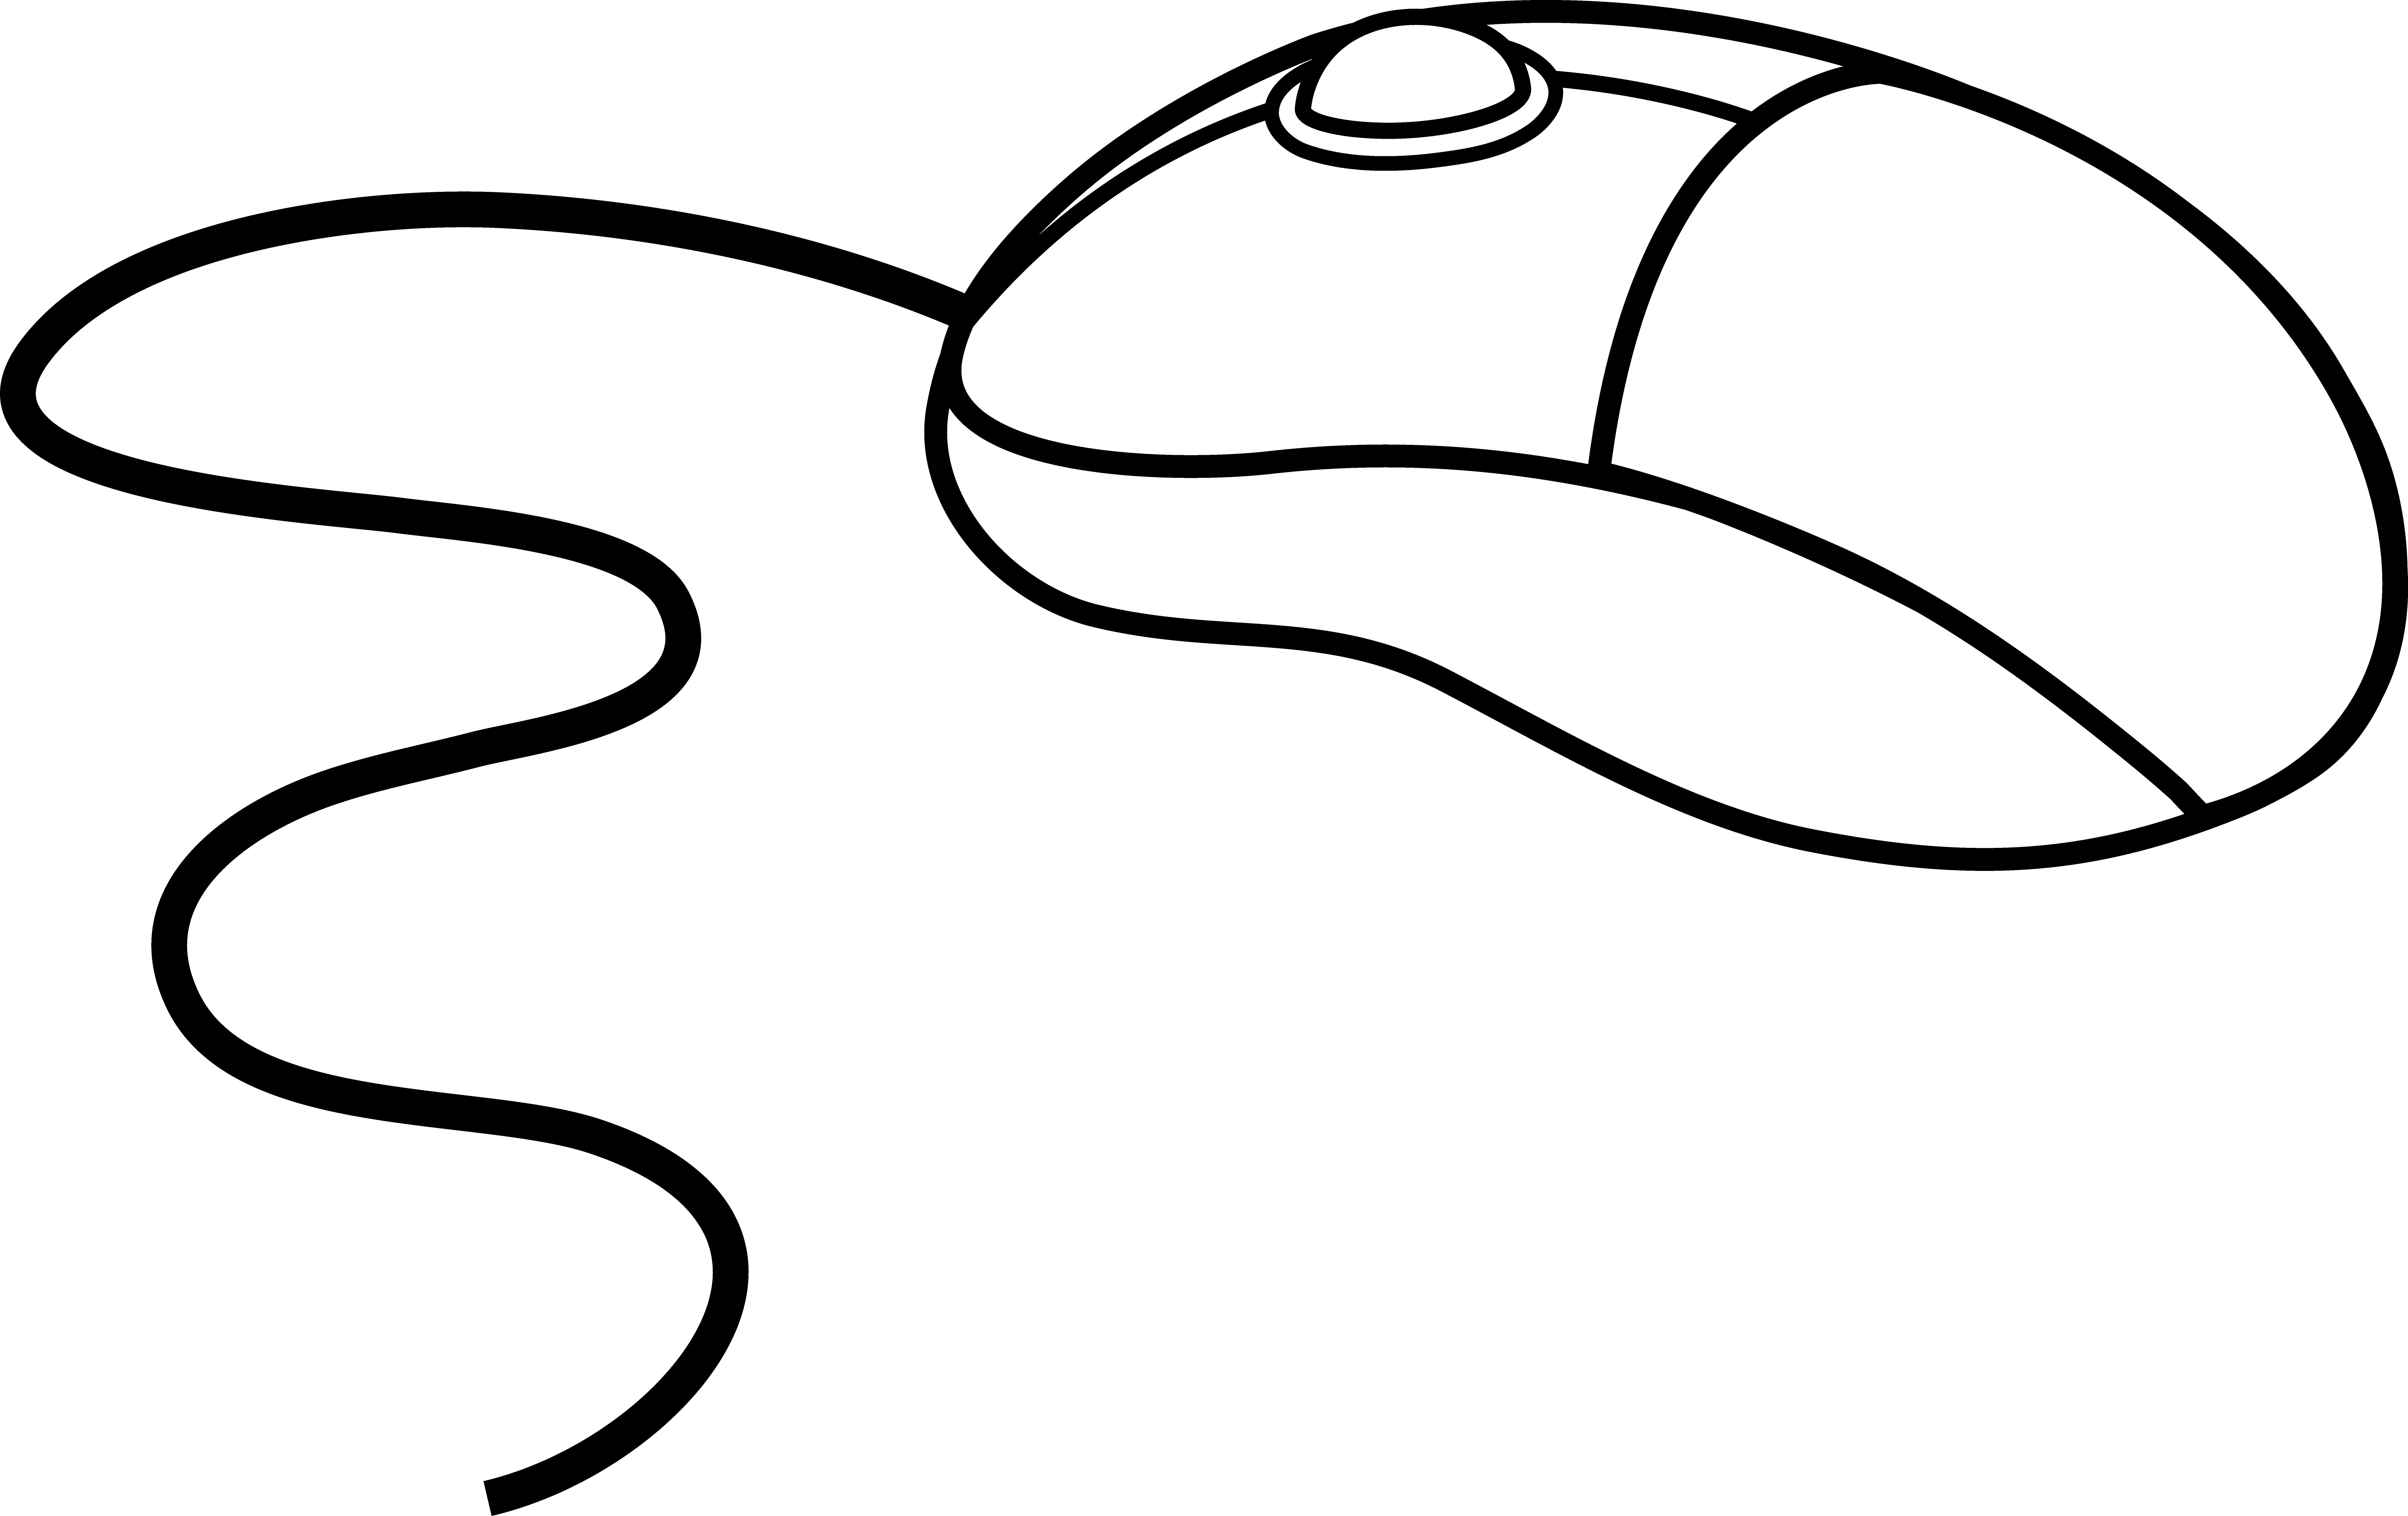 Mouse Clipart Black And White Computer Mouse Clipart Black And White